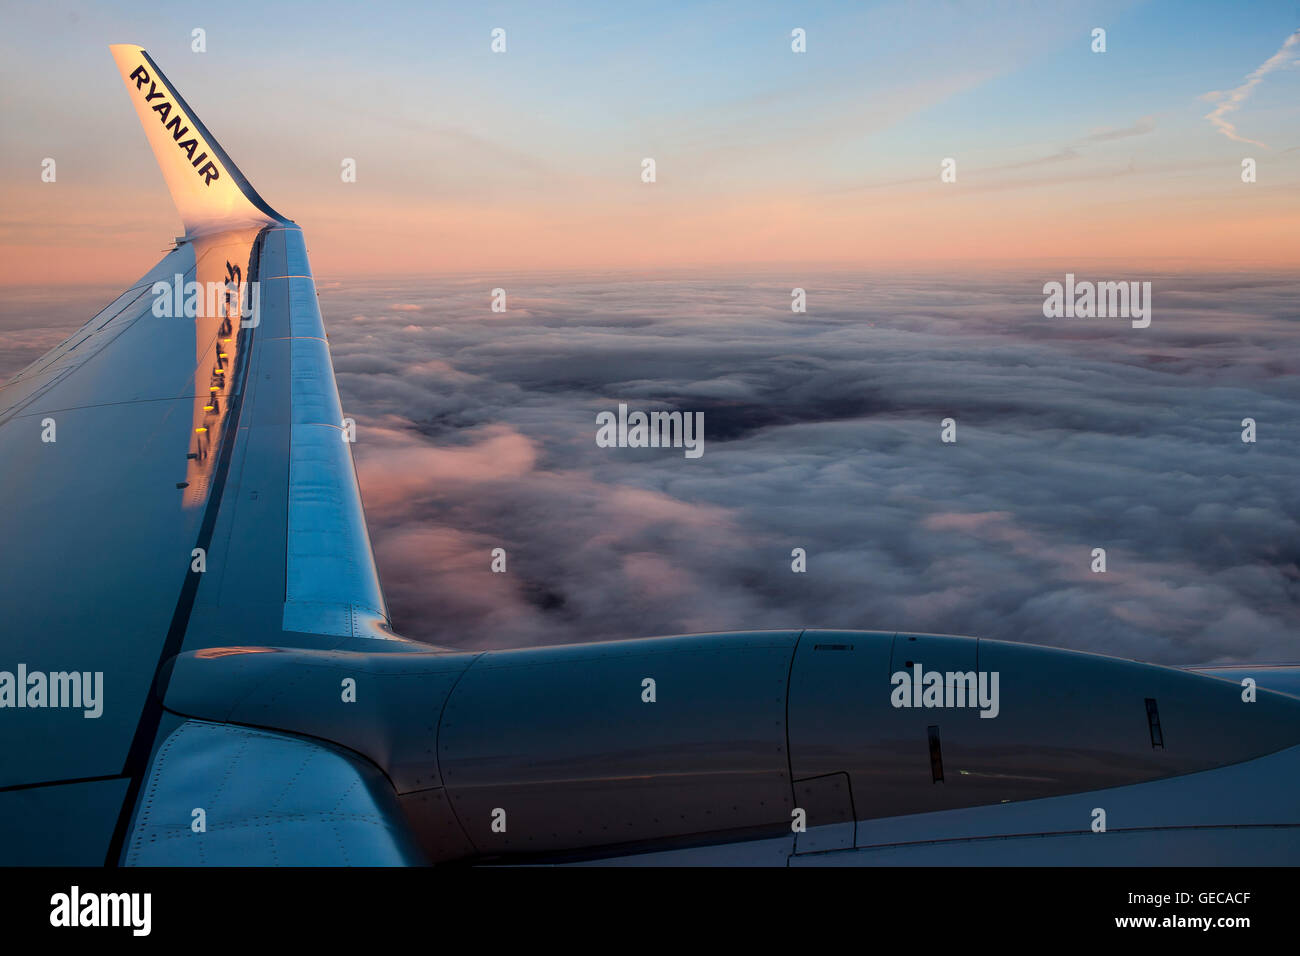 Sunset from the clouds across the winglet of a Ryanair plane as it flies from Liverpool to Riga on a scheduled flight. - Stock Image